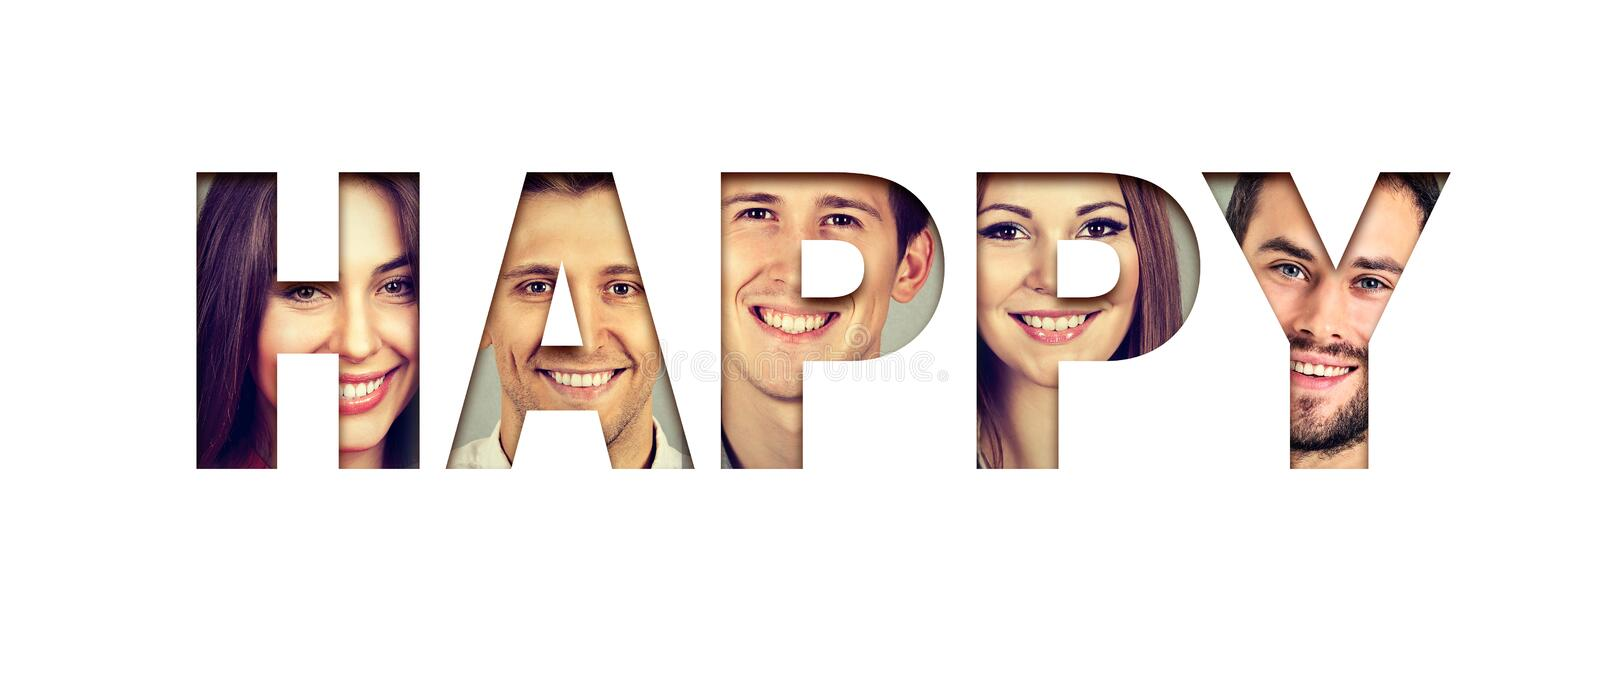 Word happy made of cheerful smiling young faces stock photo